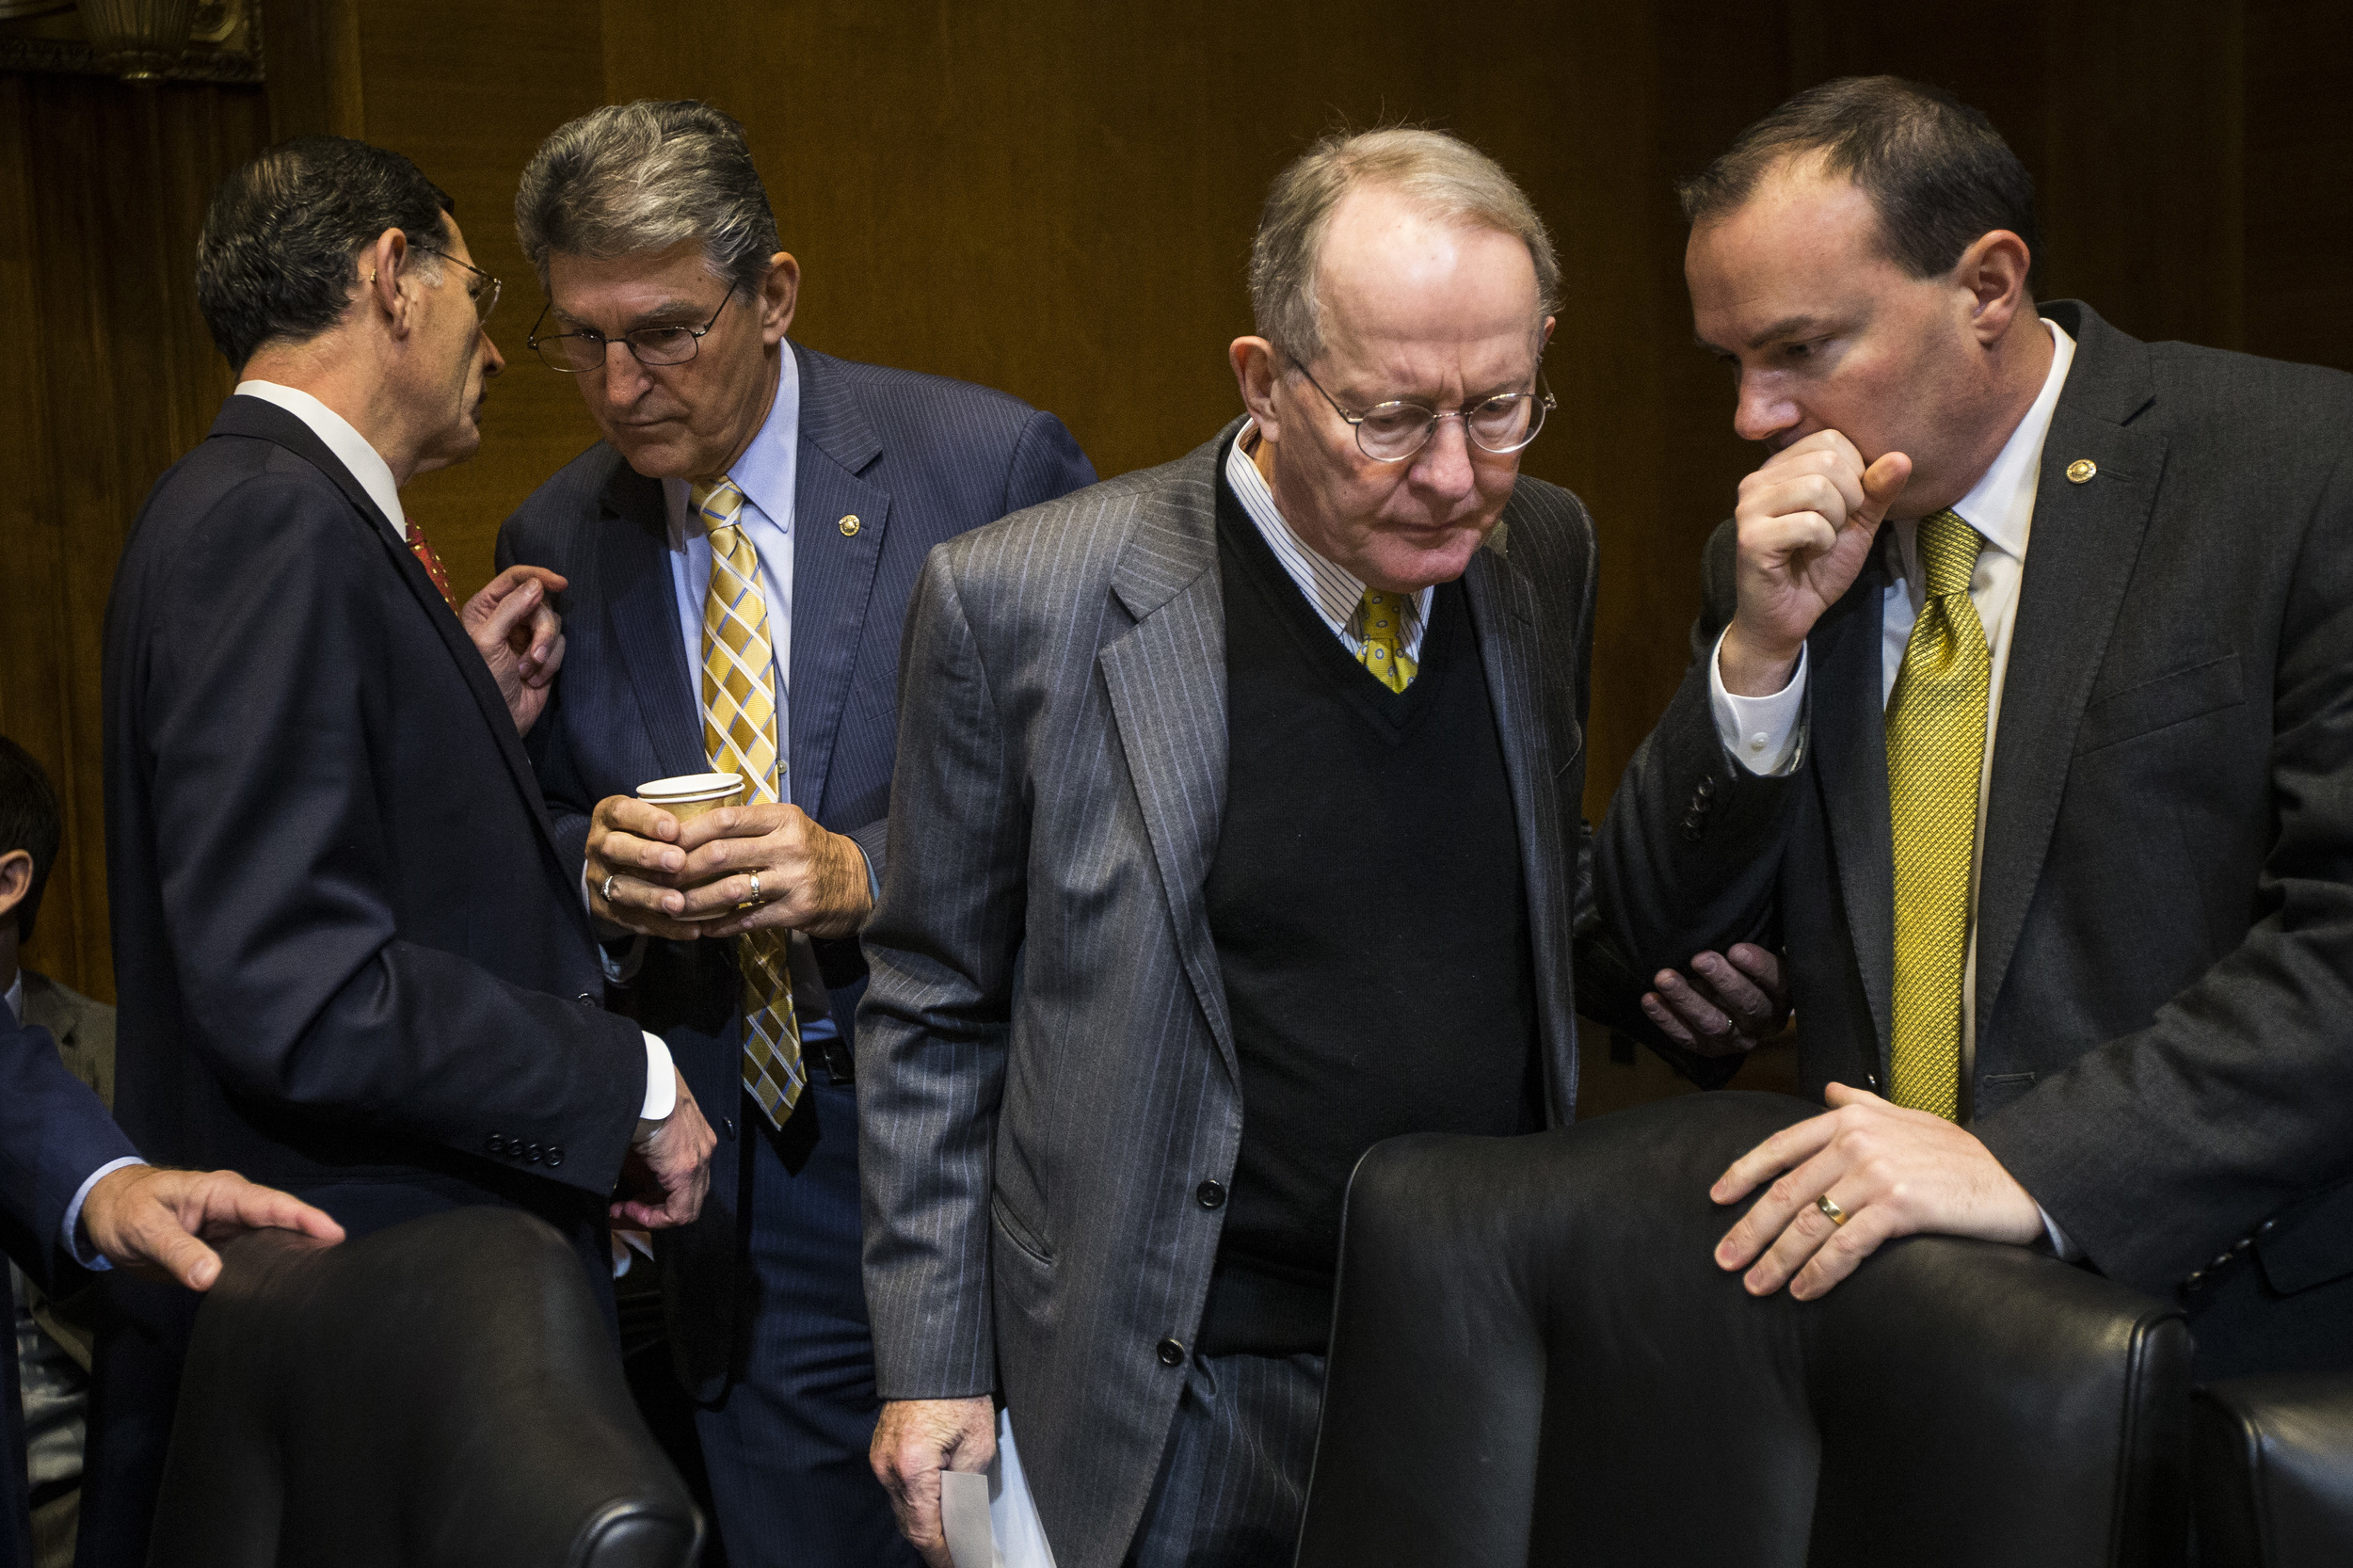 From left, Sen. John Barrasso, R-Wyo., Sen. Joe Manchin, D-W.Va., Sen. Lamar Alexander, R-Tenn., and Sen. Mike Lee, R-Utah, speak to each other during the Senate Energy and Natural Resources Committee markup on the Keystone XL pipeline bill on Capitol Hill in Washington, DC on Thursday January 08, 2015. As promised by Republican leaders who now hold the majority in Congress, the Keystone bill is at the top of their agenda after it fell short of passage in December when Democrats ruled the Senate.